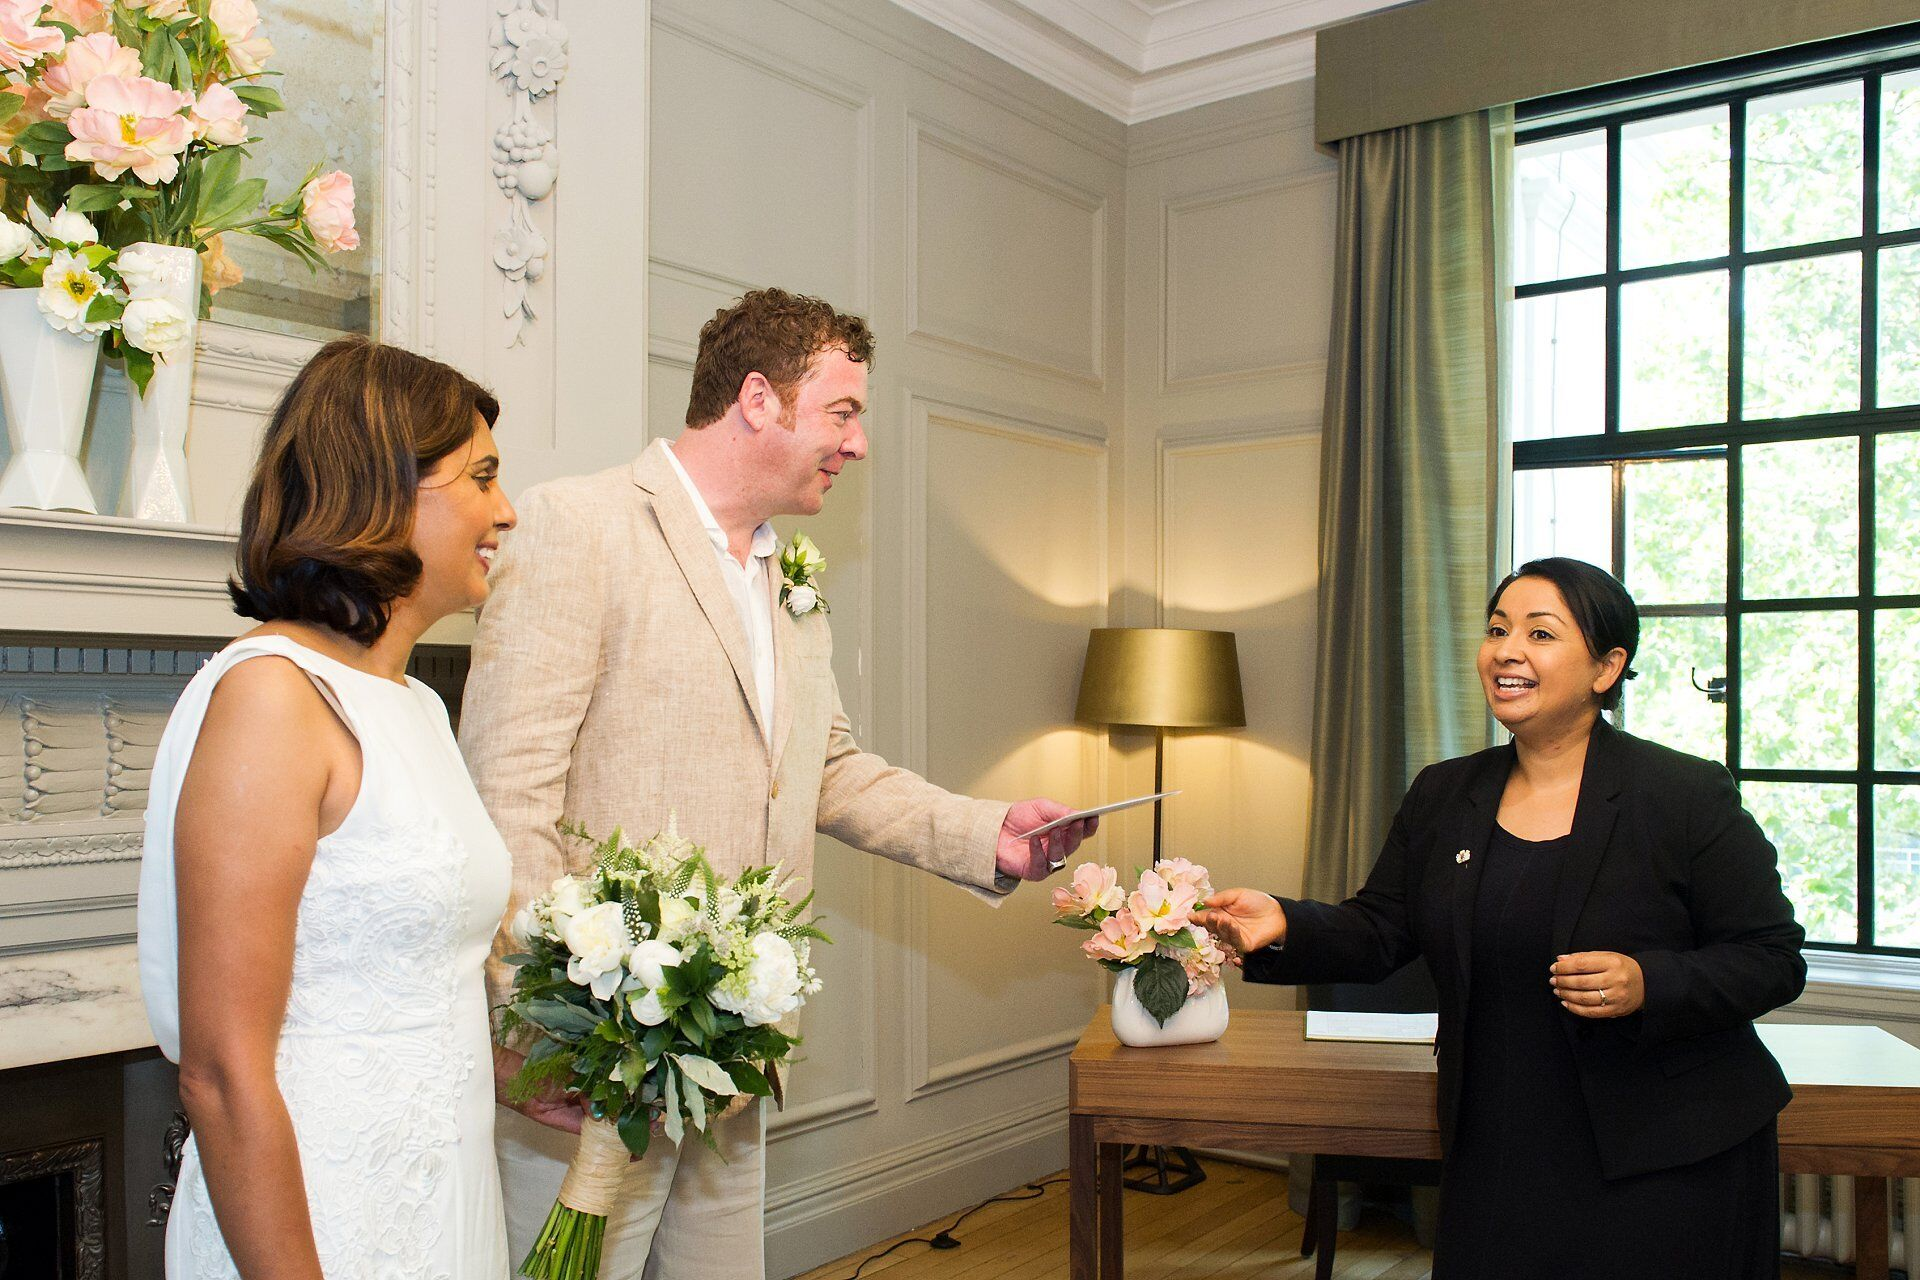 registrar from westminster council hands over the marriage certificate to a bride and groom in the soho room